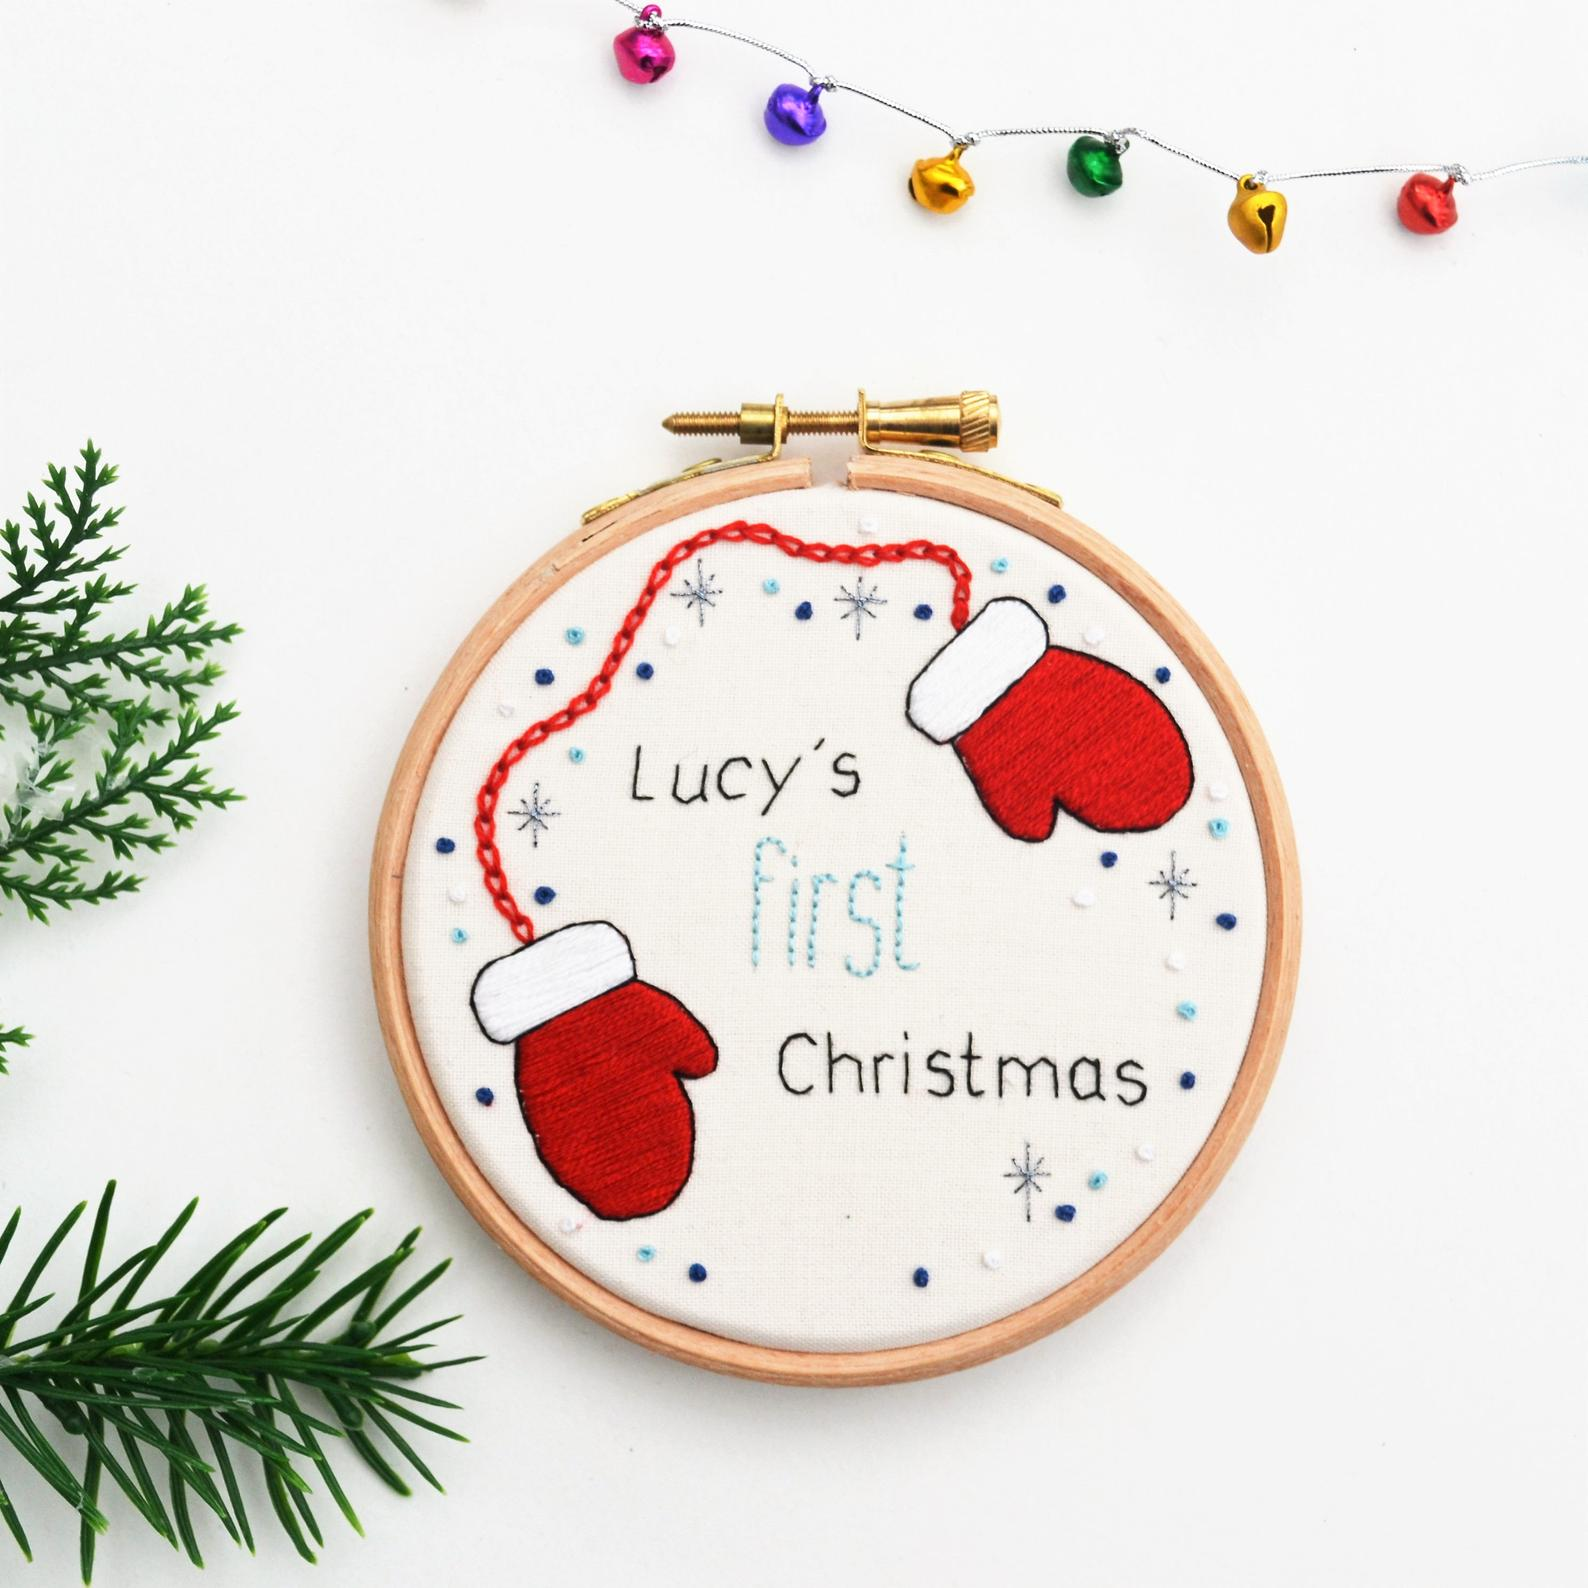 First Christmas Hand Embroidery Christmas Hoop by Pixiecraft Handmade